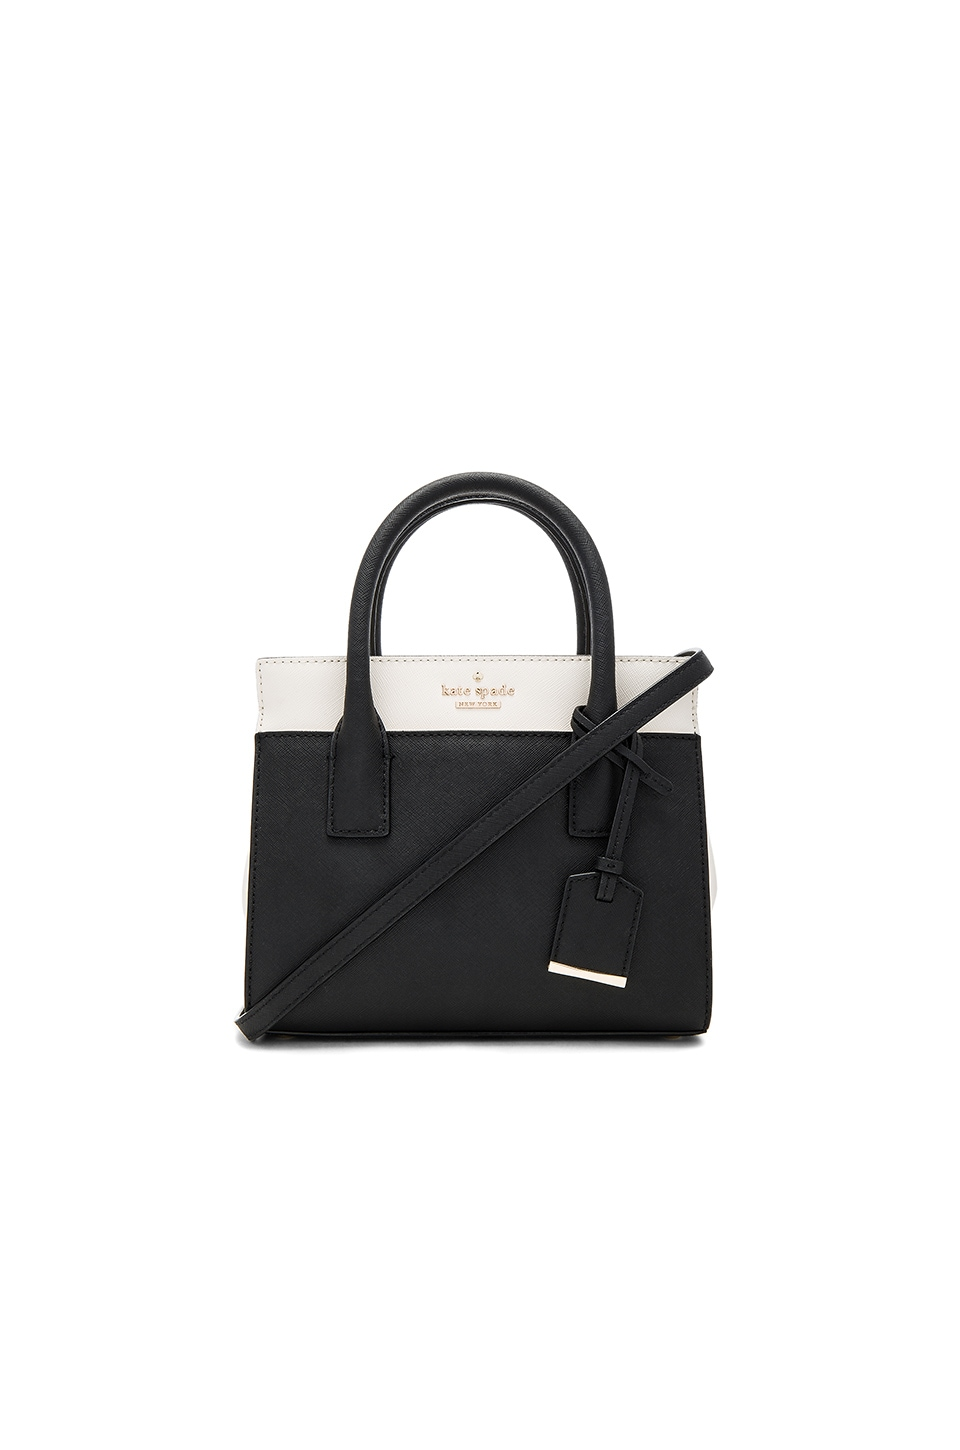 kate spade new york Mini Candace Bag in Black & Cement